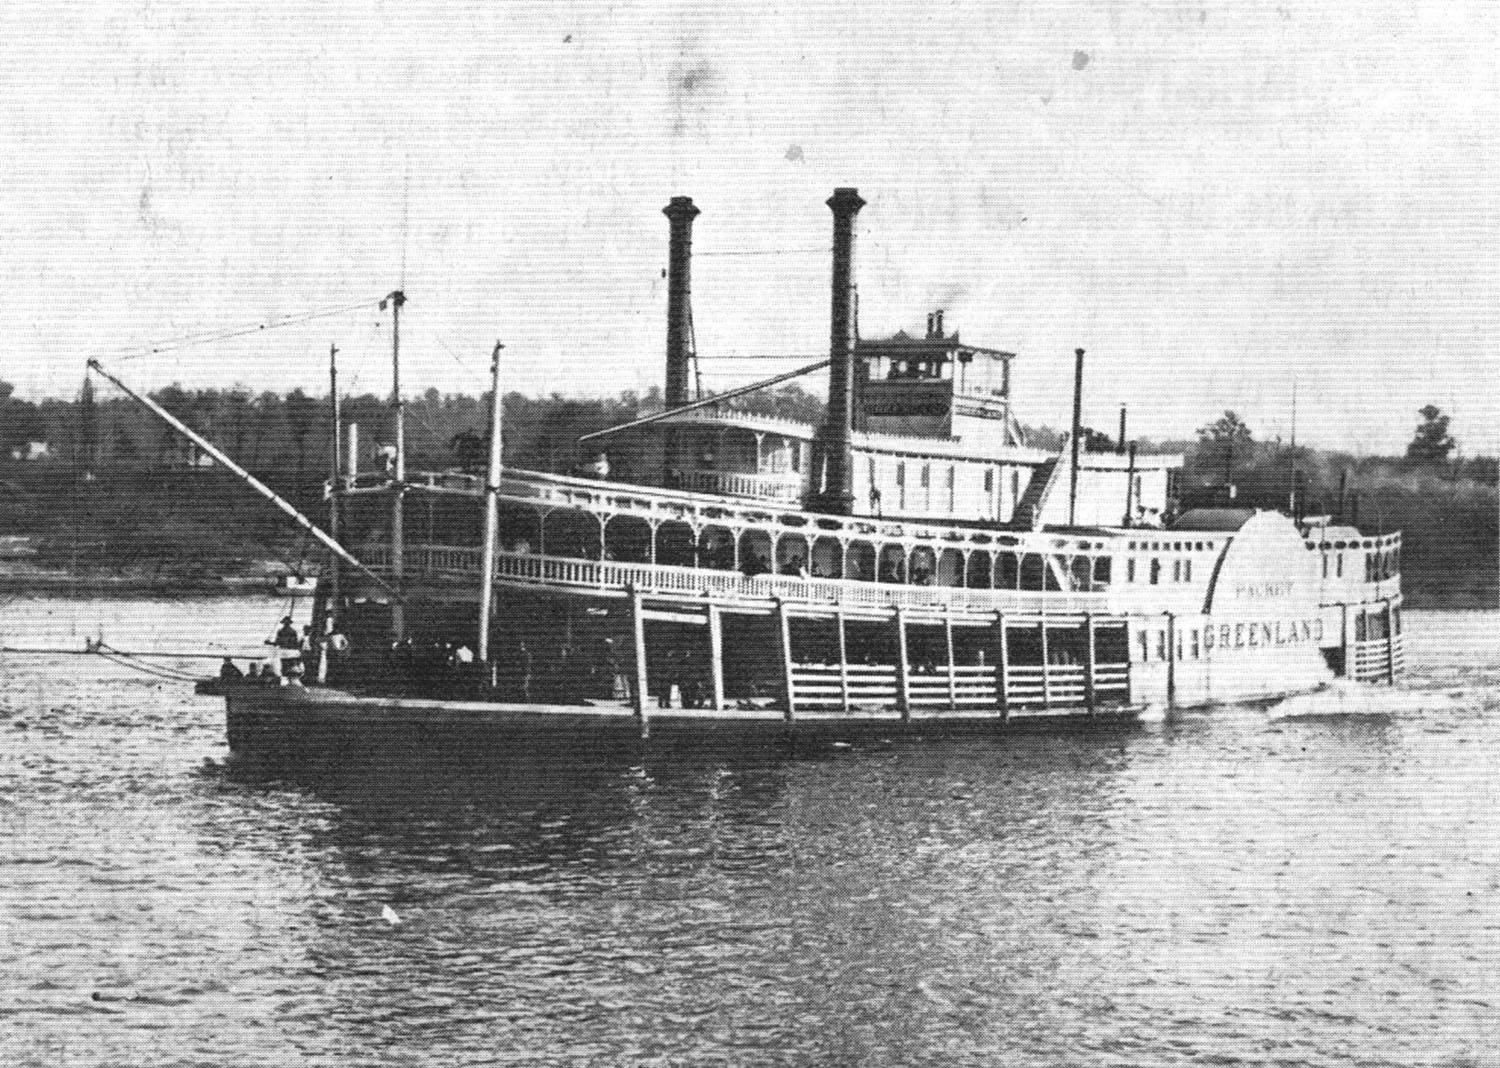 Caption for photo: The Greenland underway on the Ohio River at Burkes Point. (Keith Norrington collection)